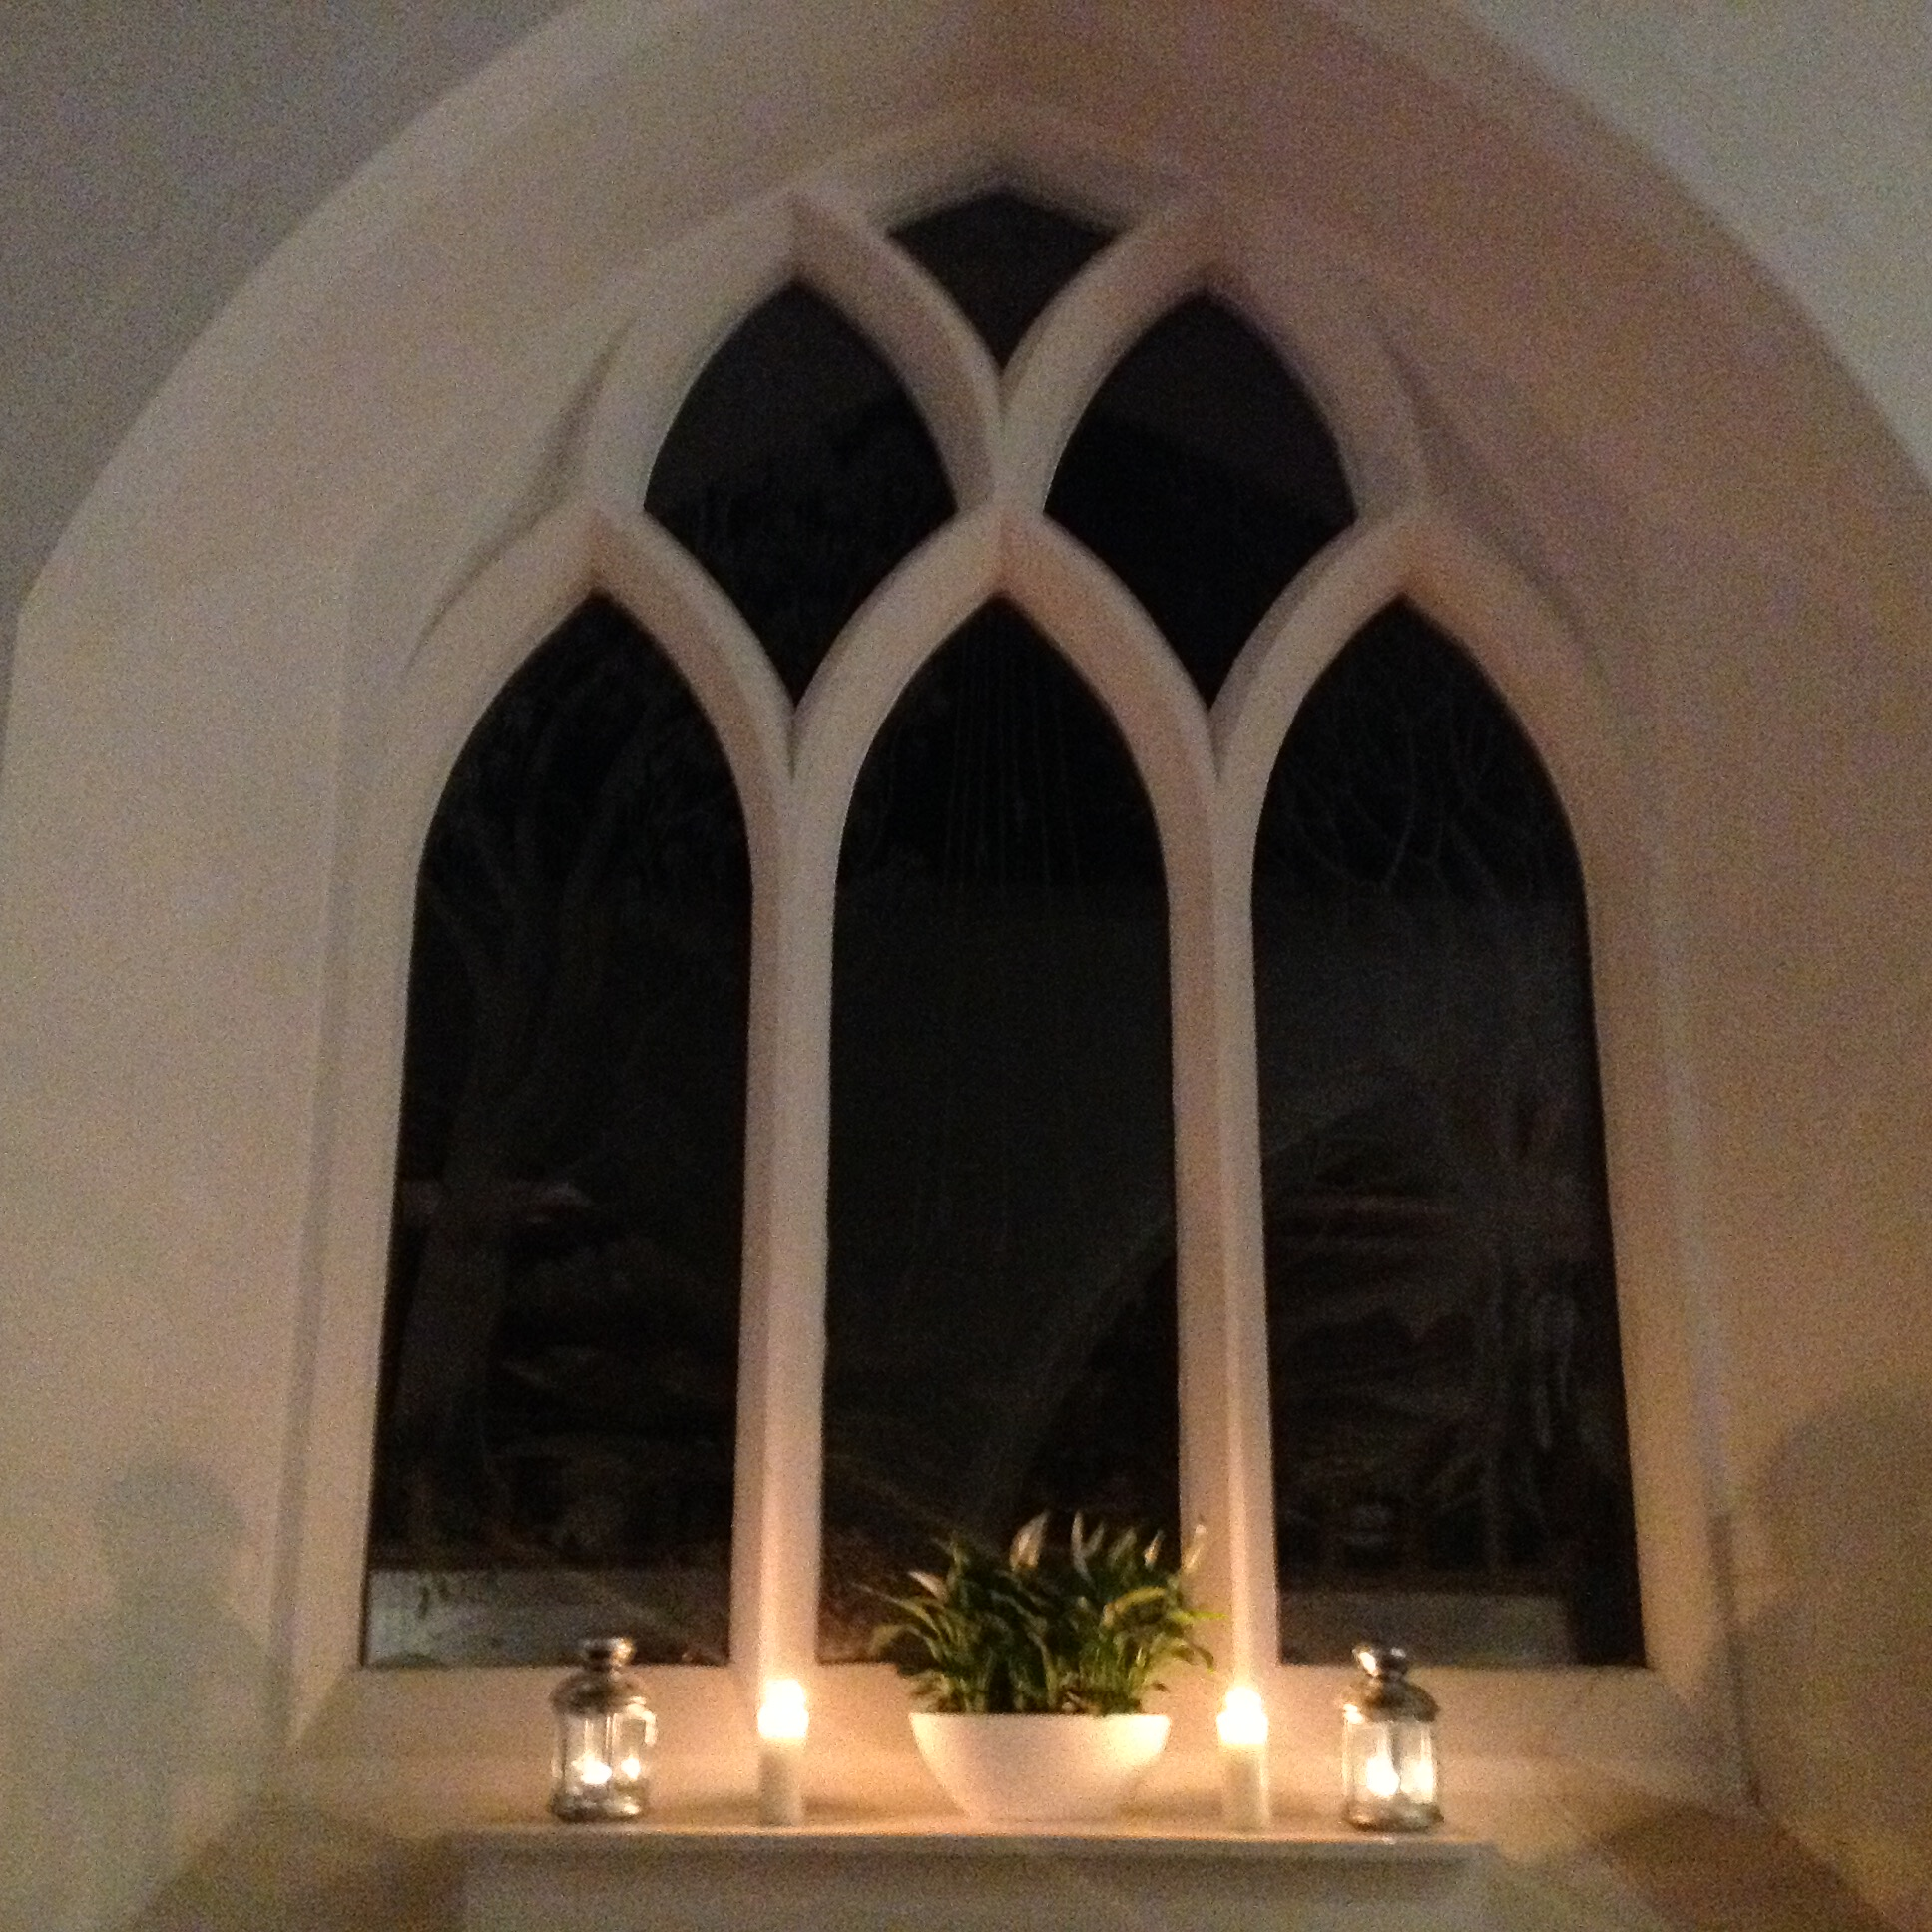 The candlelit Laurence Whistler Window